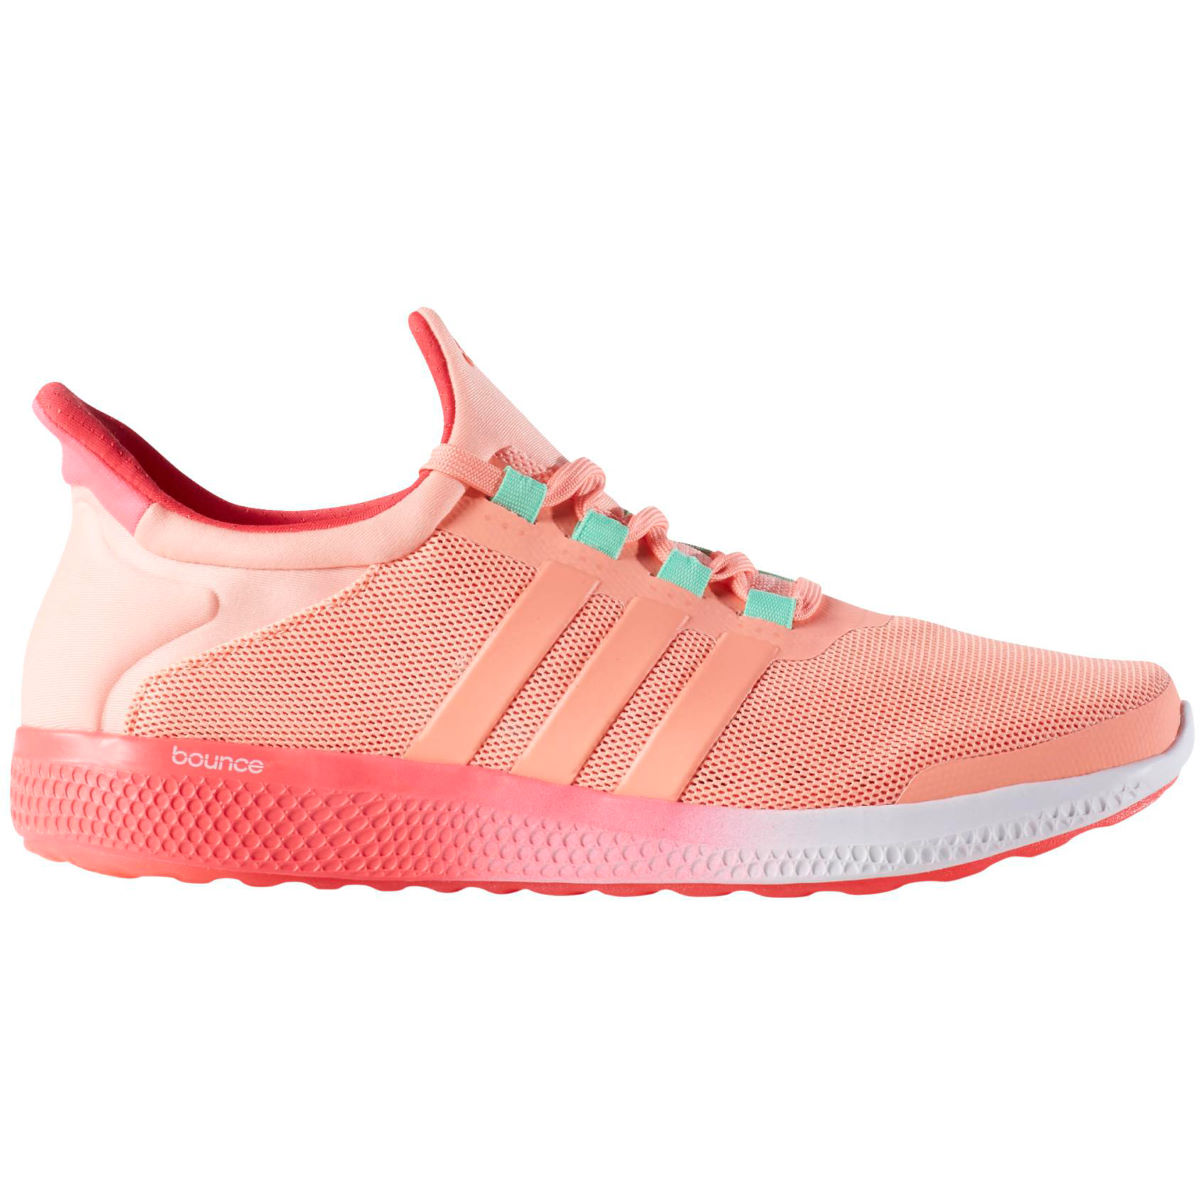 Adidas Womens Climachill Sonic Shoes (SS16)   Training Running Shoes